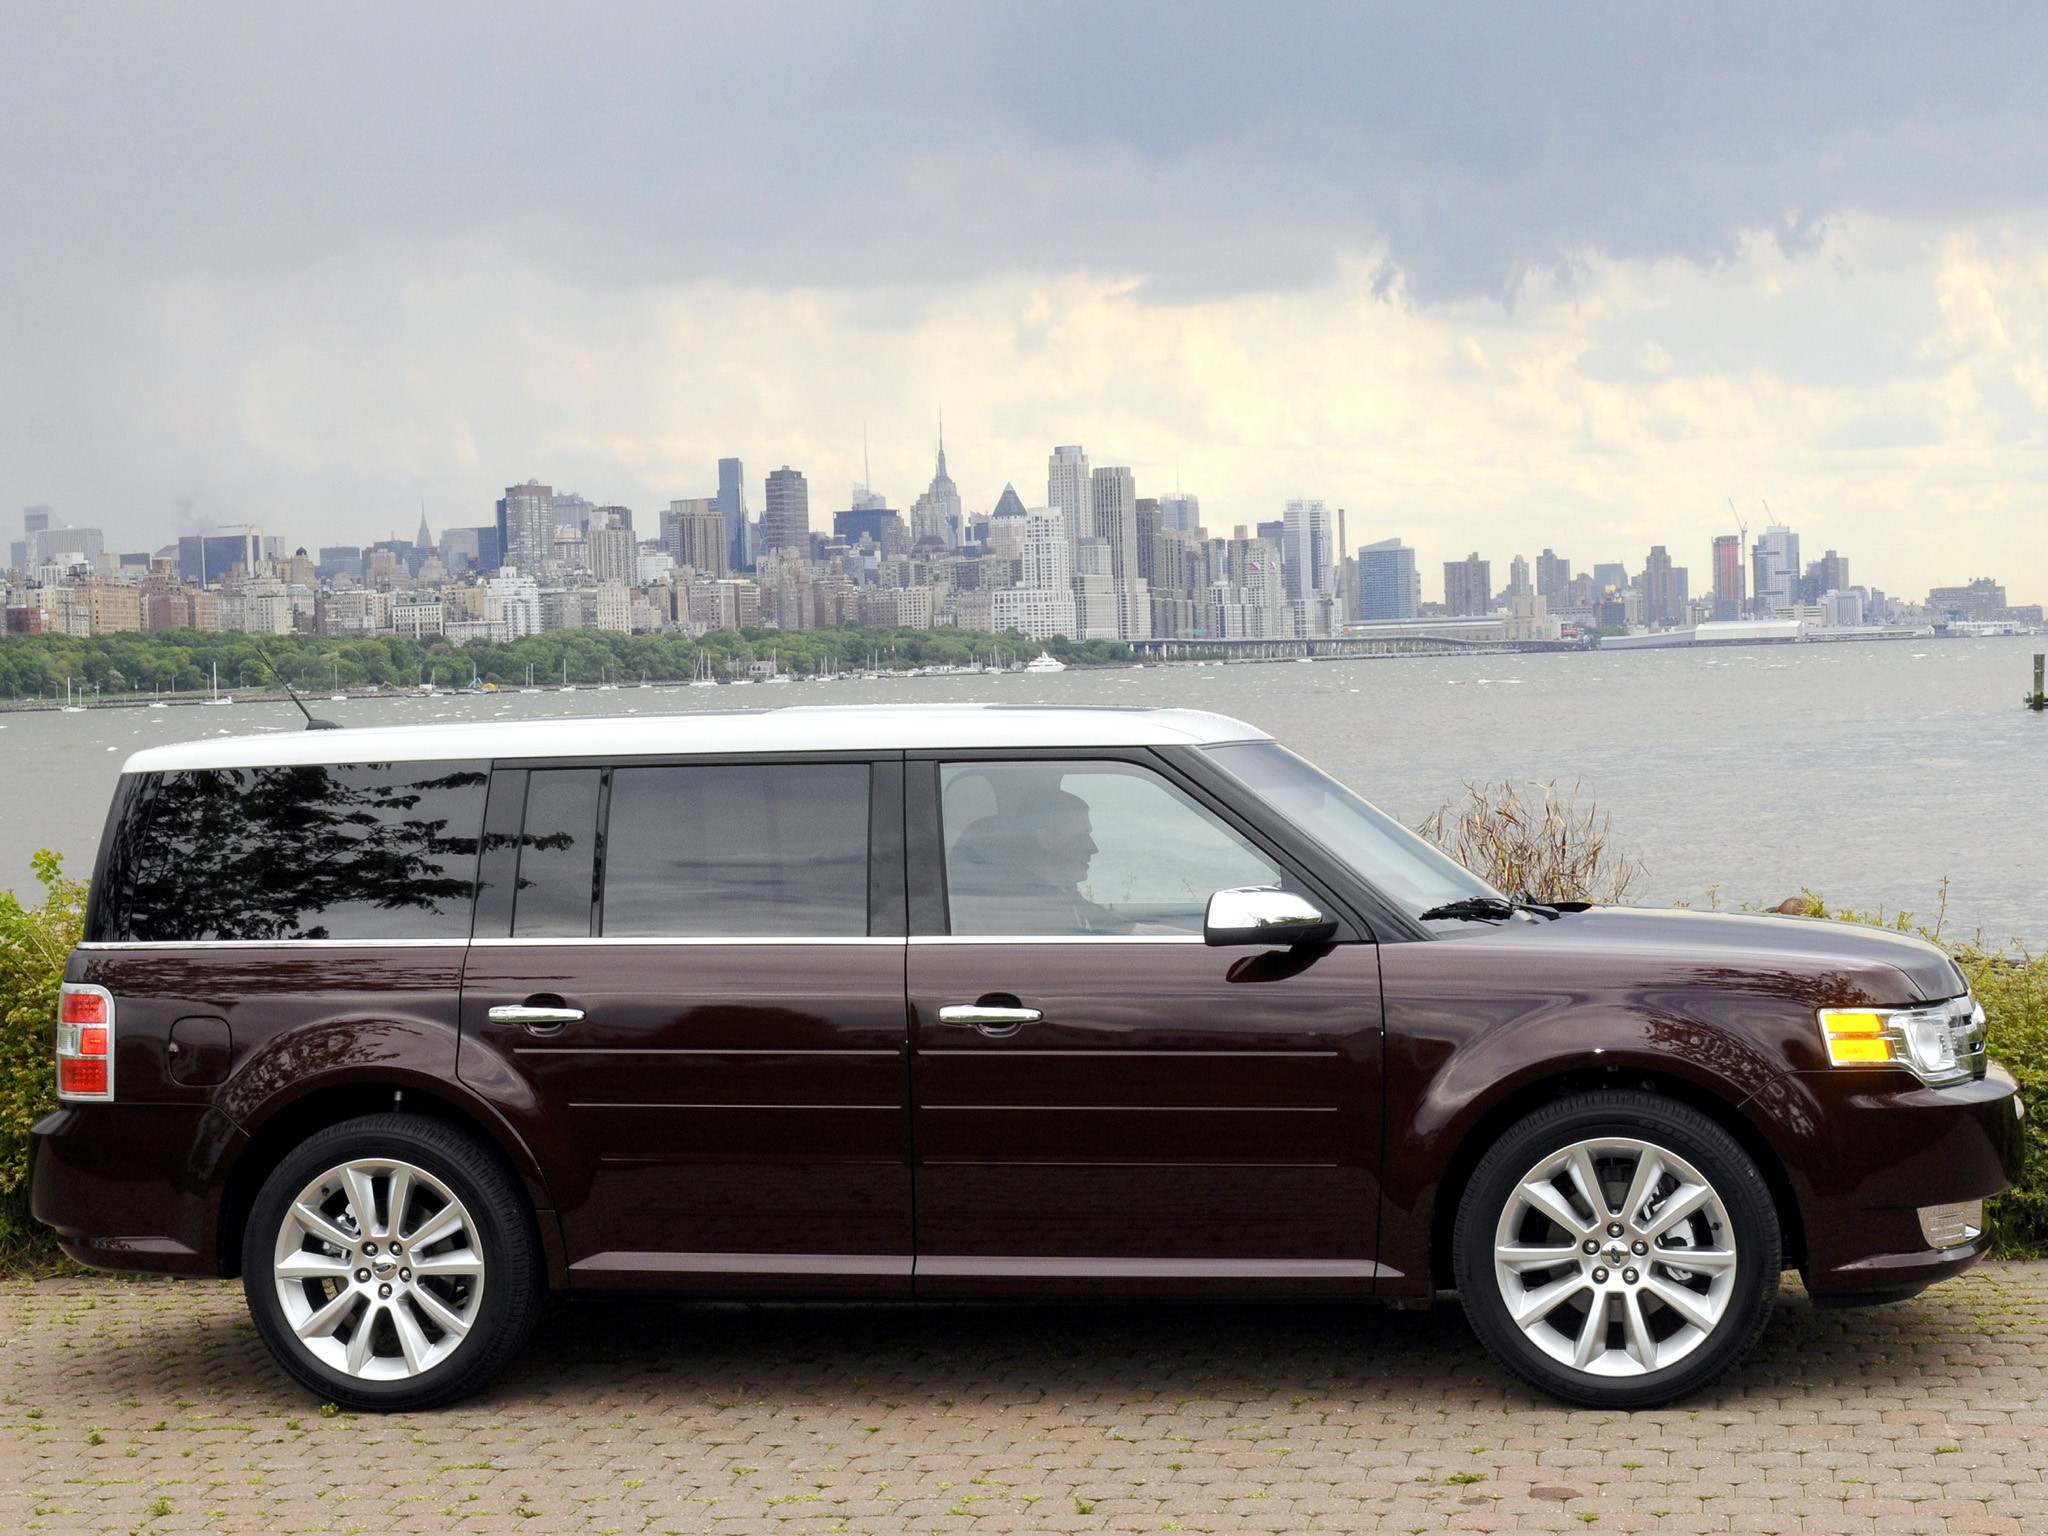 Ford Flex on Ford Duratec V6 Engine